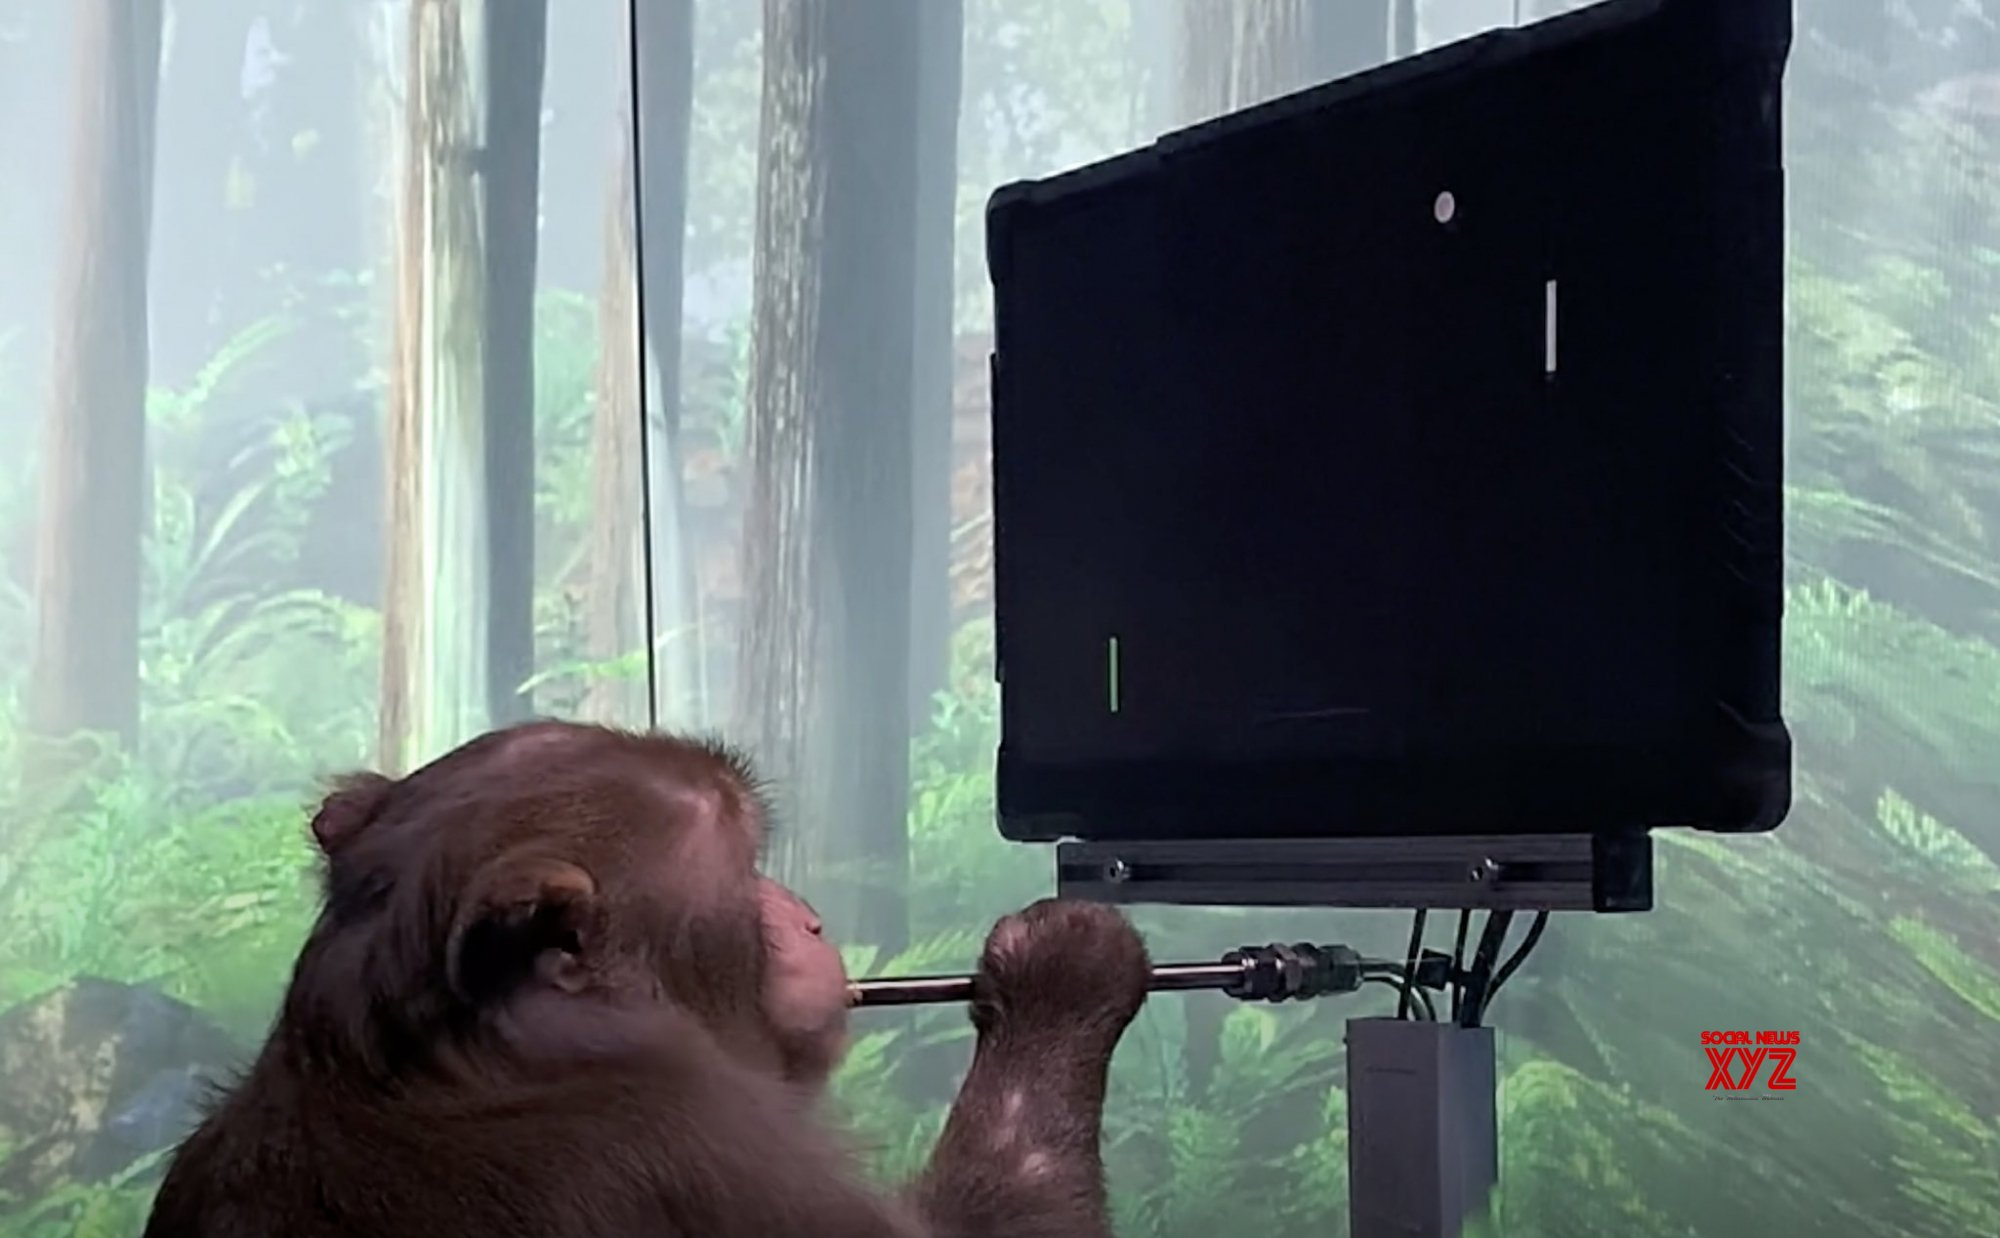 Musk's Neuralink shows how monkey plays Pong with his mind